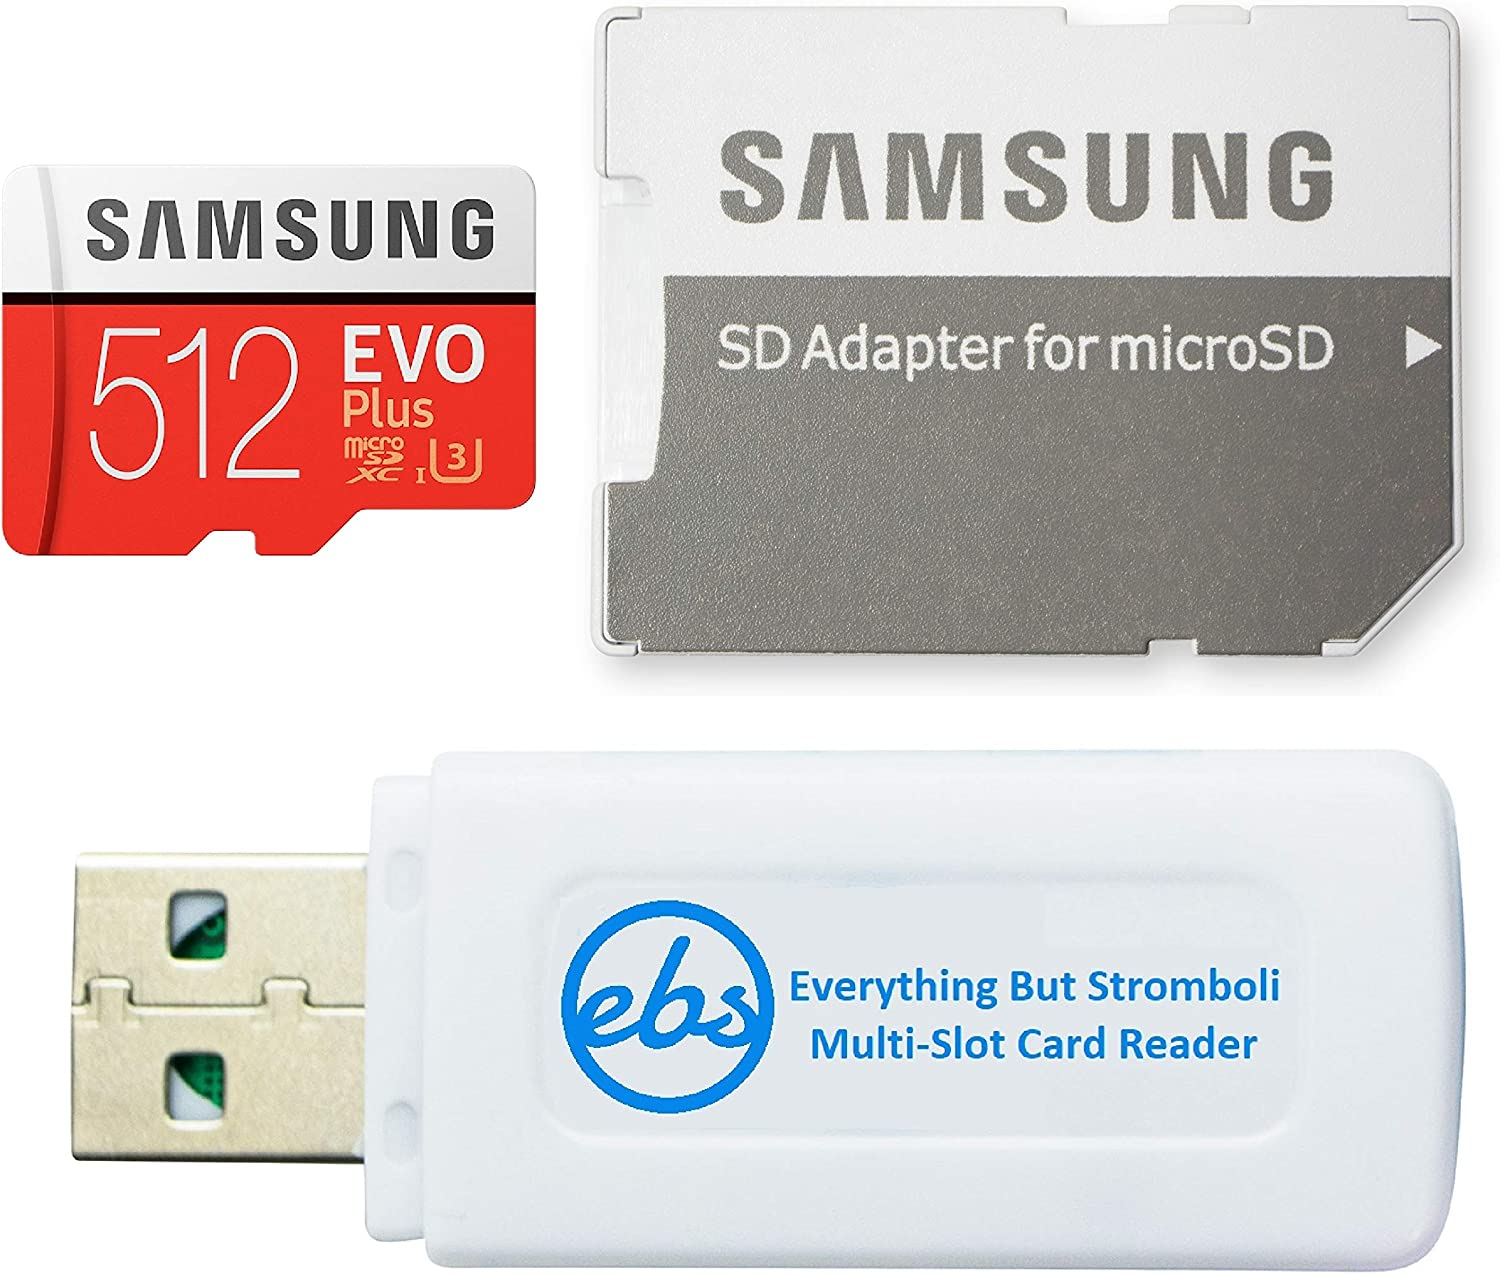 Samsung EVO Plus 512GB MicroSD Memory Card for Samsung Tablet Works with Galaxy Tab A7 FE 5G, Tab S7 FE, A7 Lite Tablet (MB-MC512) Bundle with (1) Everything But Stromboli SD & MicroSDXC Card Reader